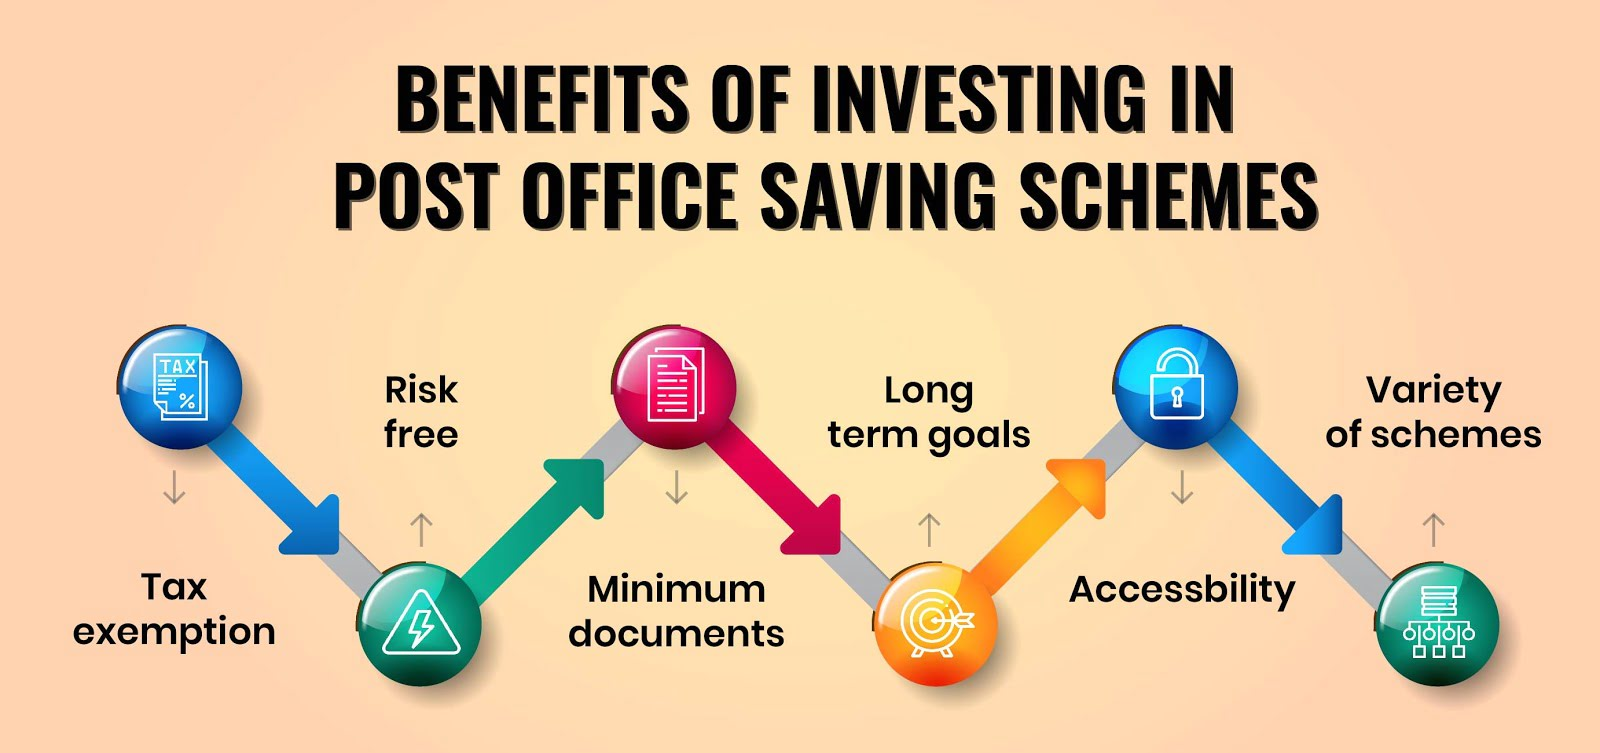 Benefits of Investing in Post Office Schemes